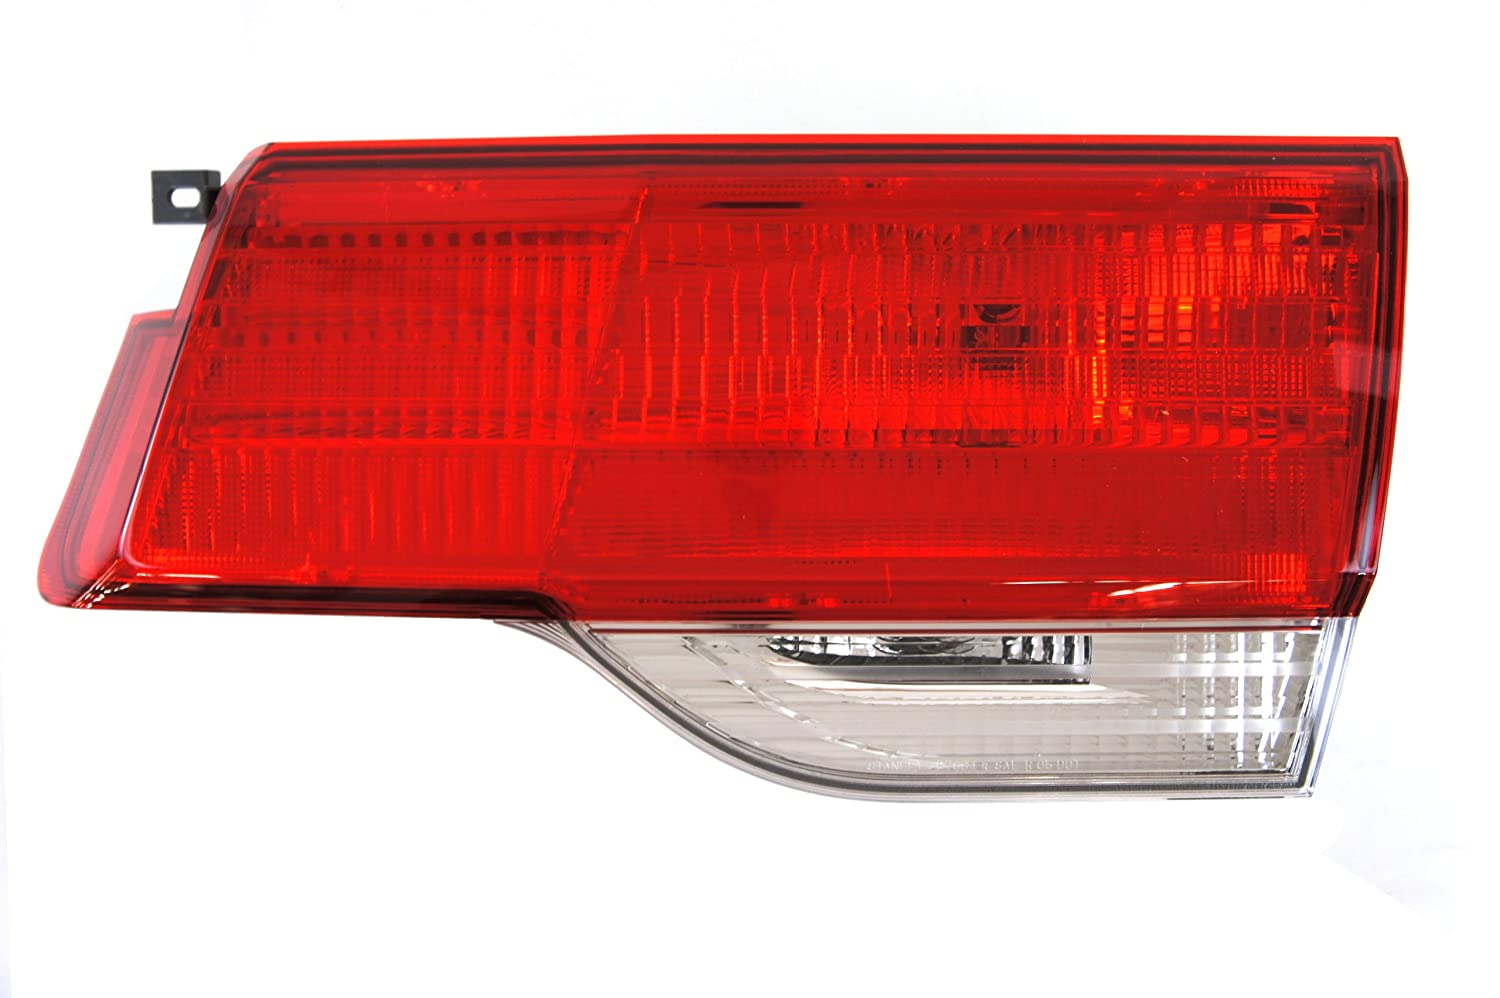 Genuine Honda Parts 34150-SM4-A02 Passenger Side Taillight Assembly